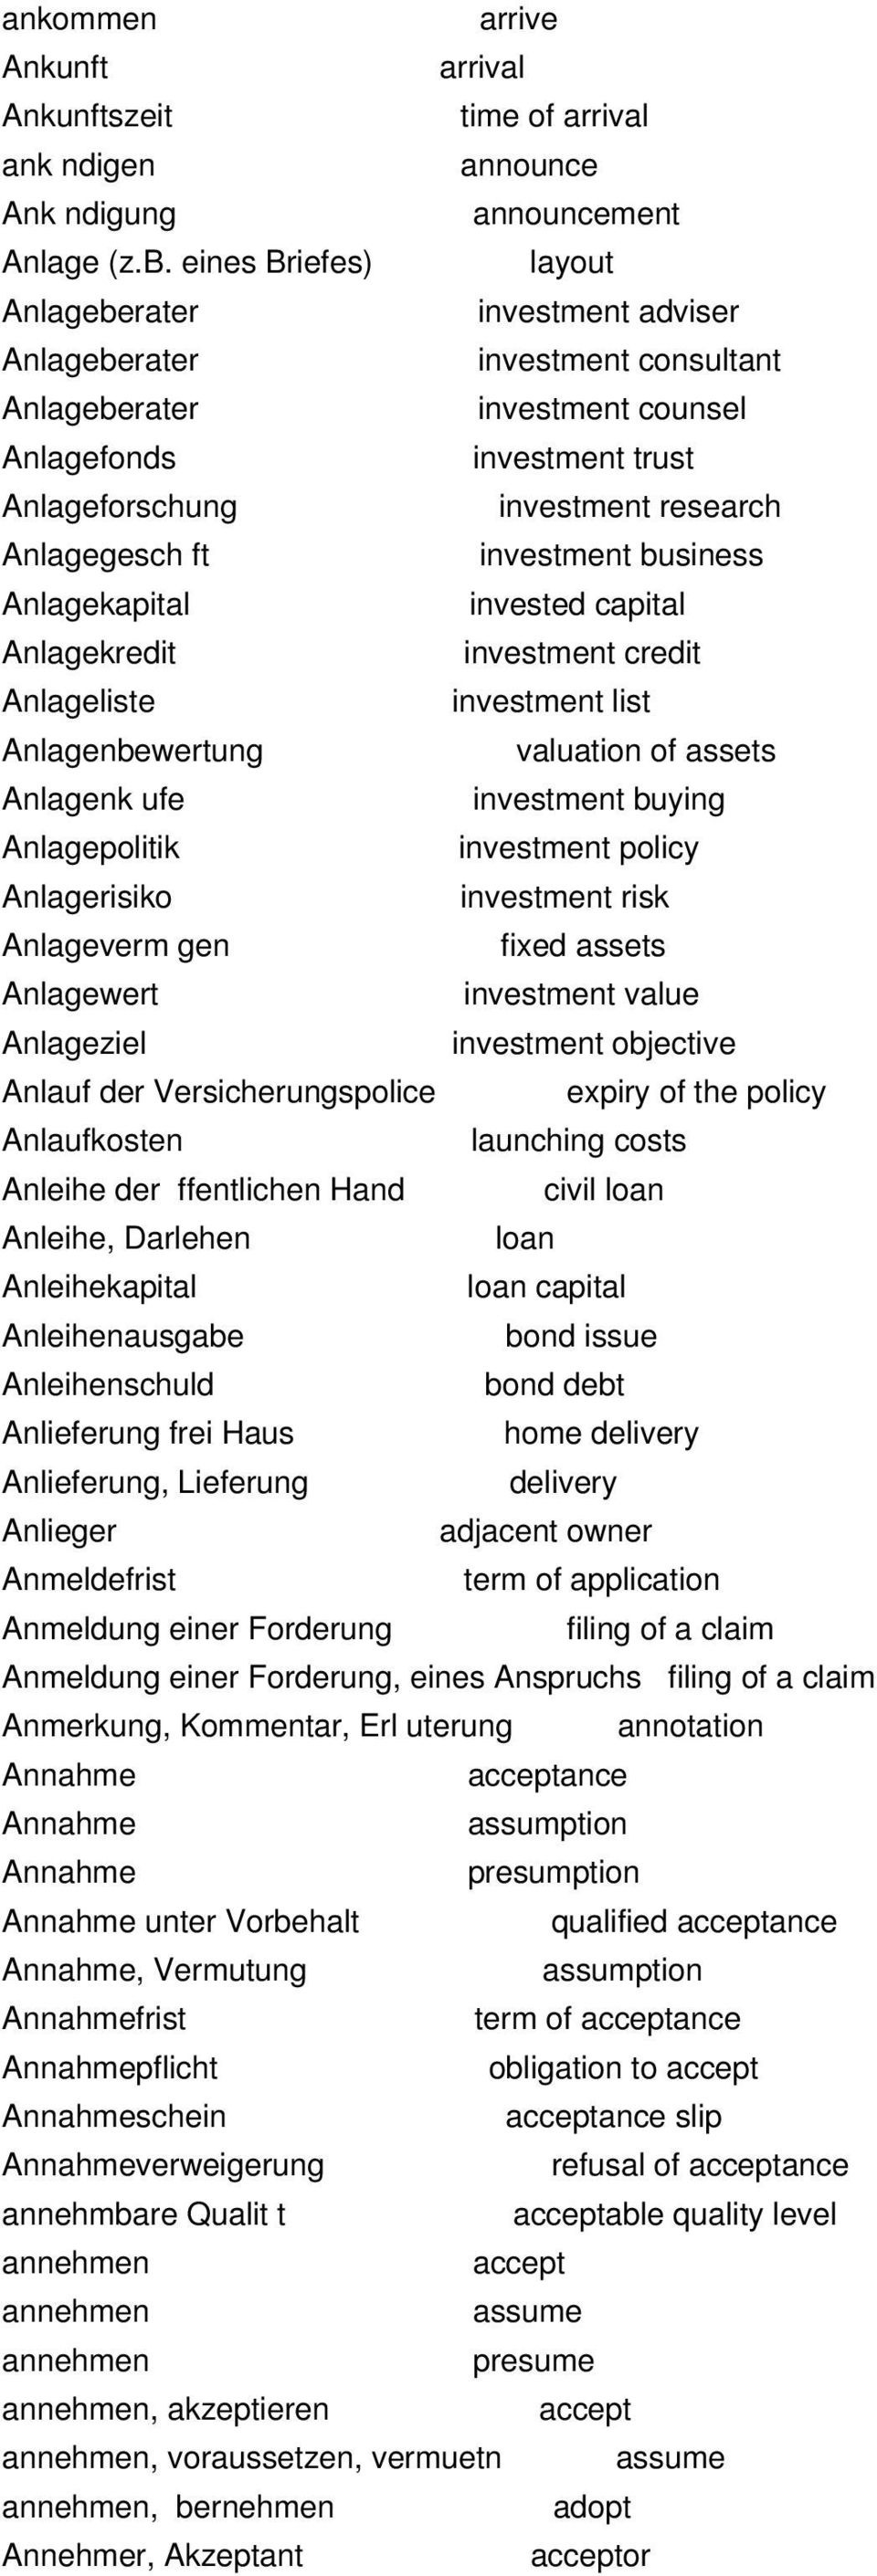 Anlagegesch ft investment business Anlagekapital invested capital Anlagekredit investment credit Anlageliste investment list Anlagenbewertung valuation of assets Anlagenk ufe investment buying